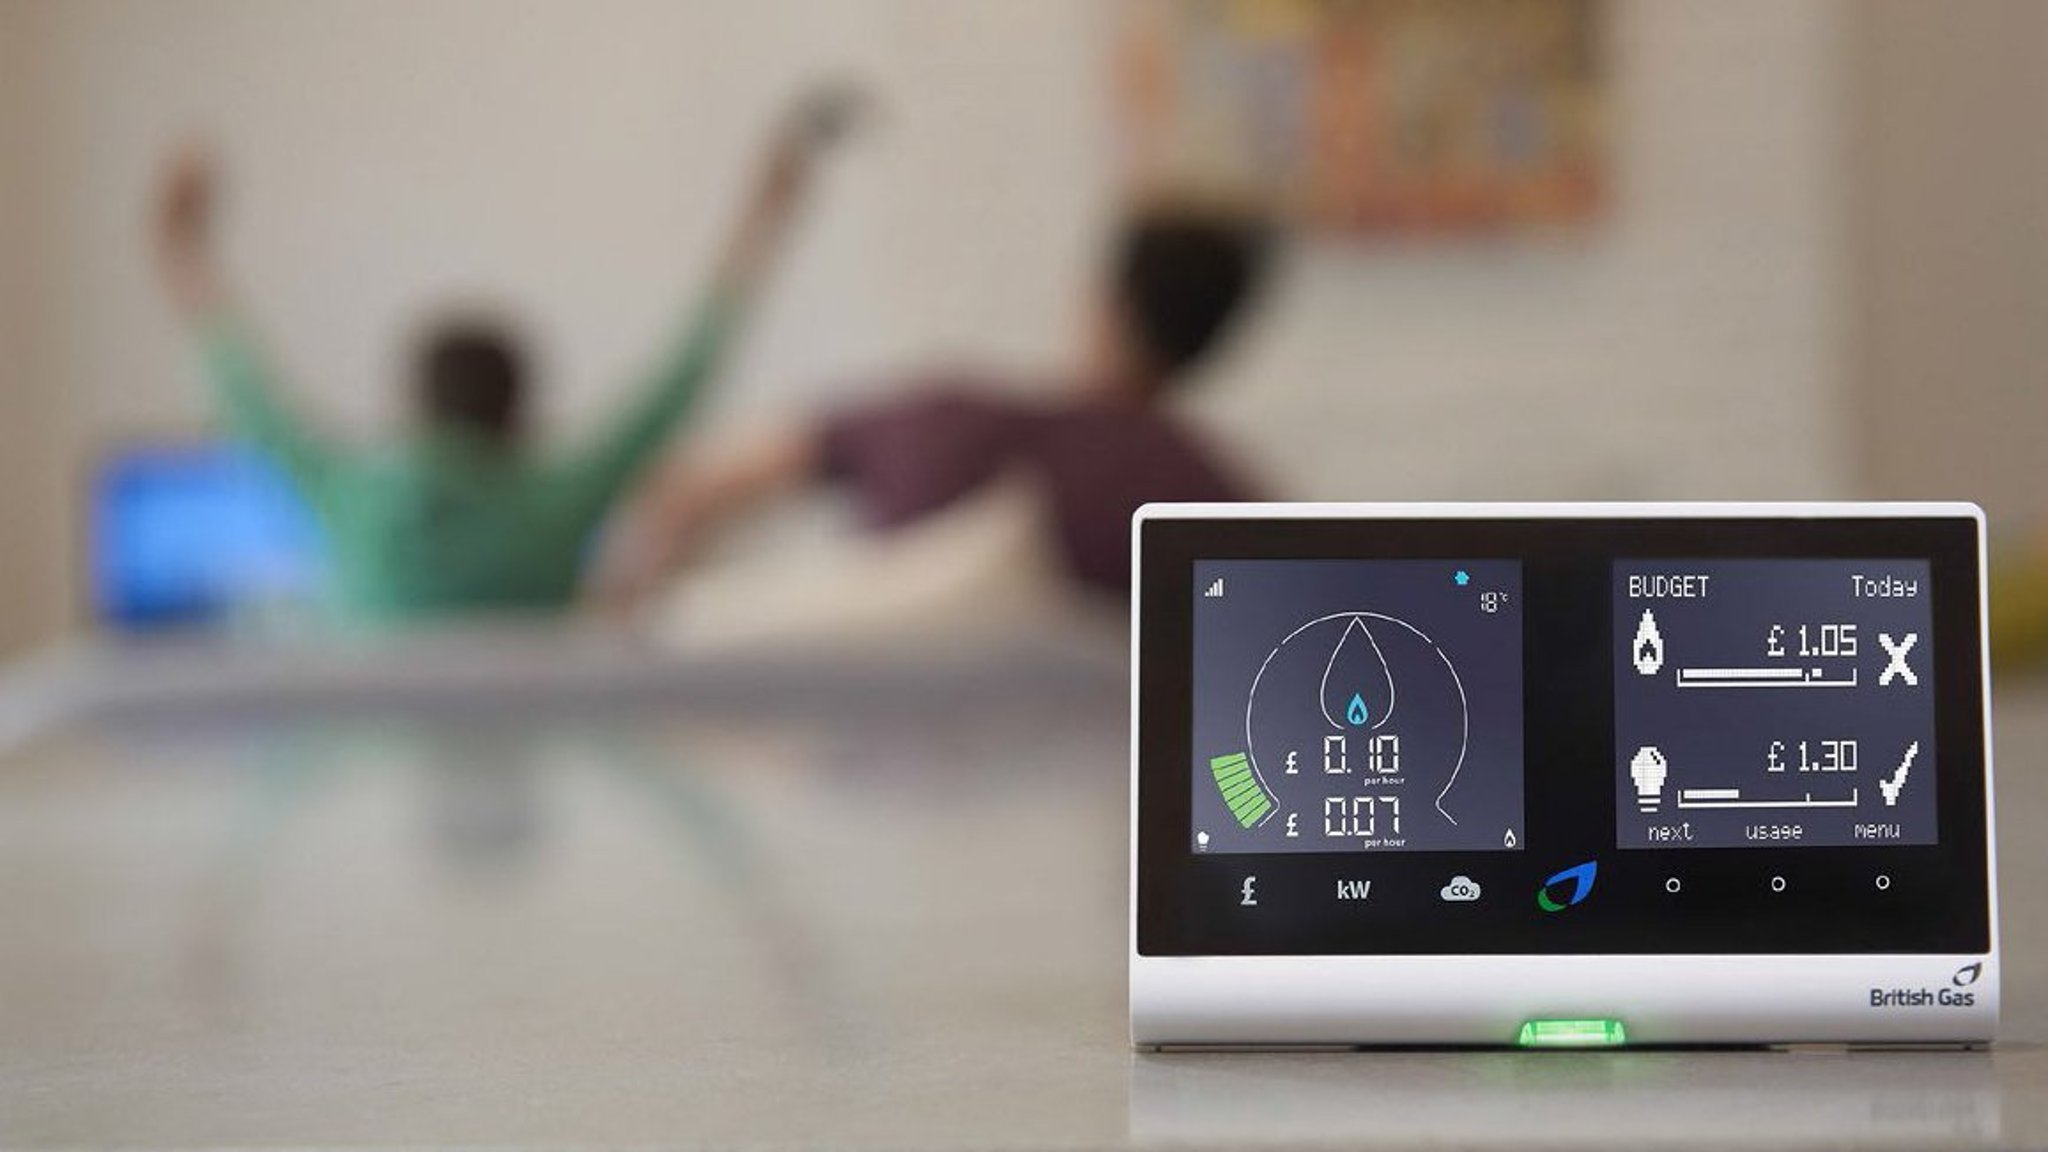 Energy panies raise alarm over £11bn smart meter rollout